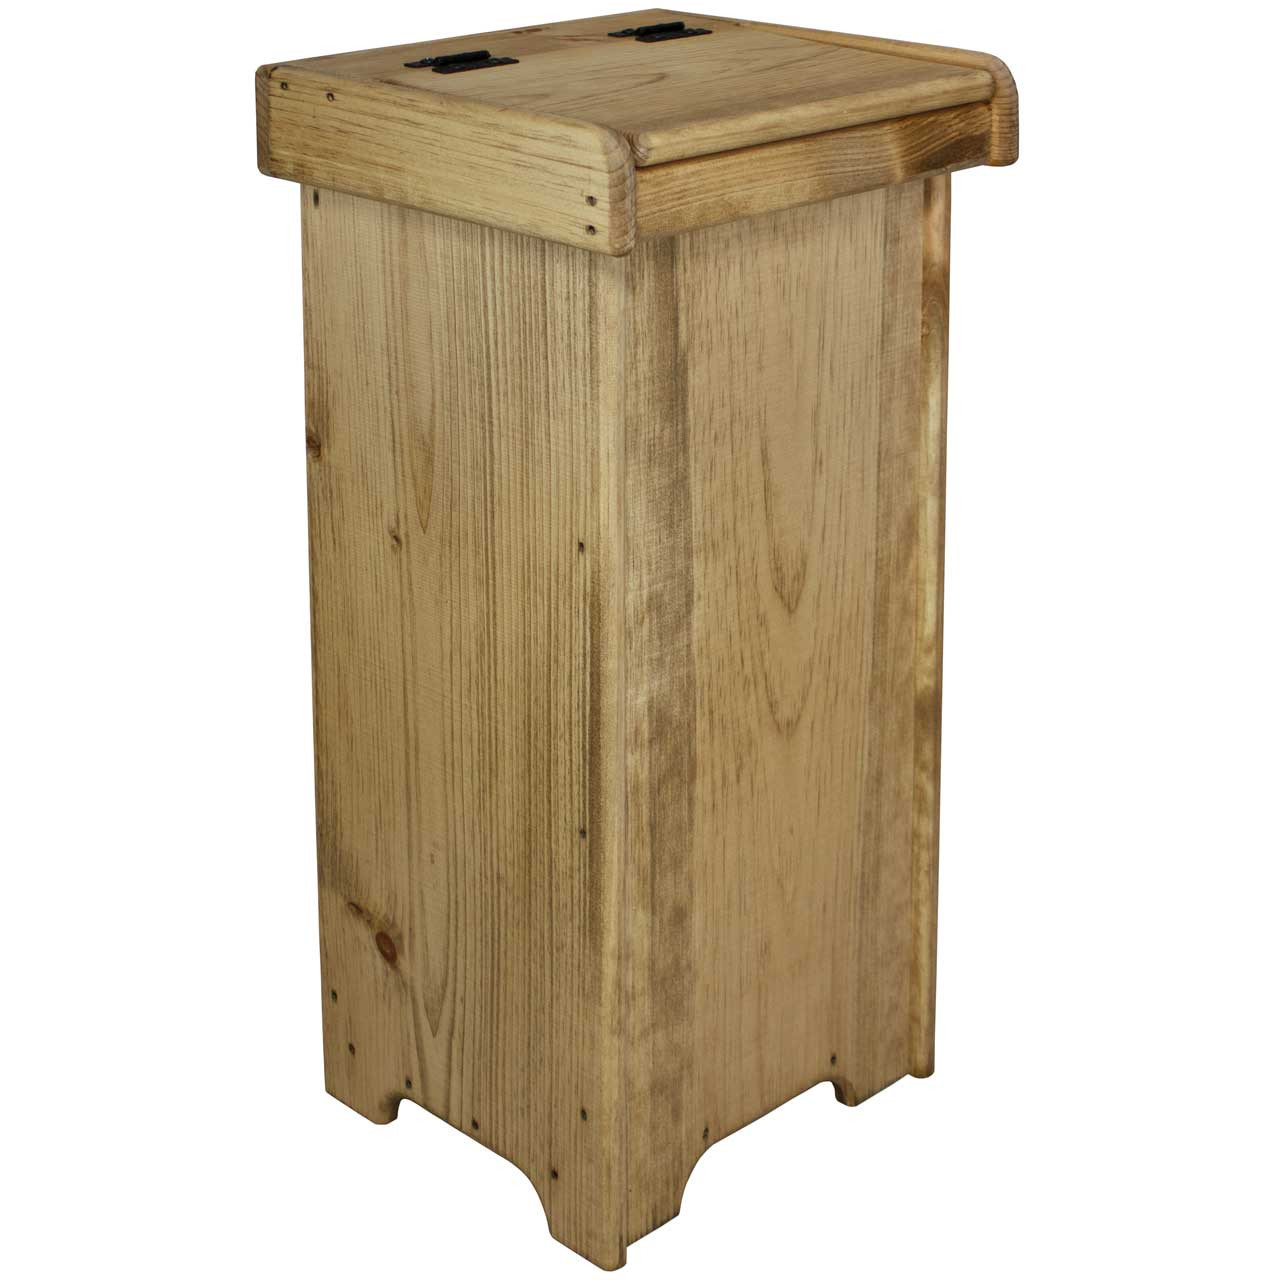 Swell Small Wooden Kitchen Trash Can With Lid Home Interior And Landscaping Eliaenasavecom